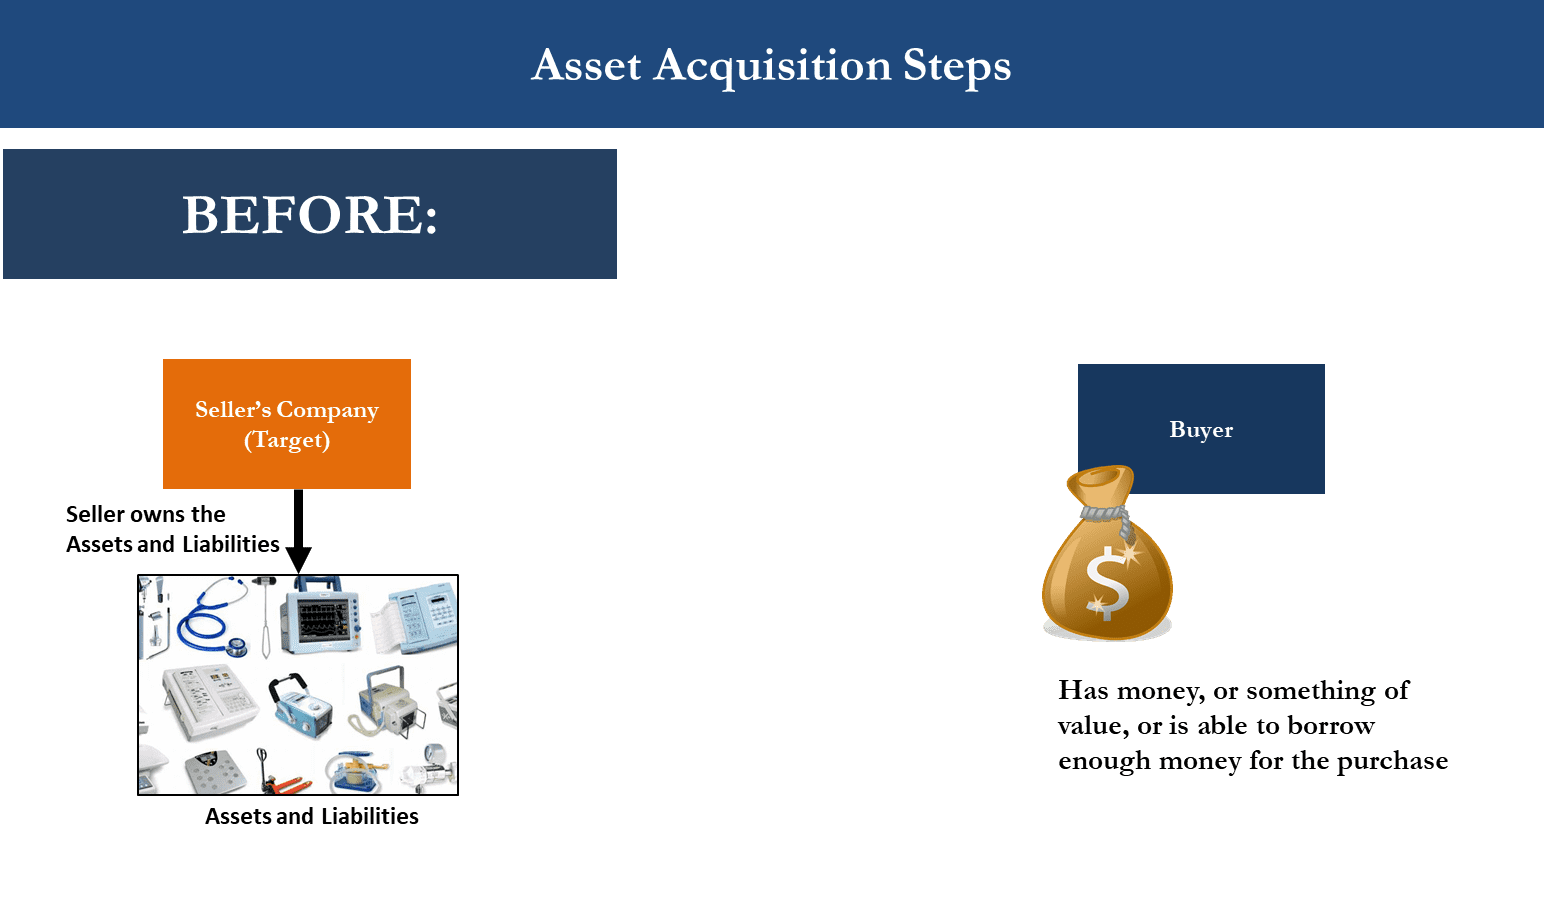 M&A Asset Acquisition Diagram showing Status Before Transaction Takes Place